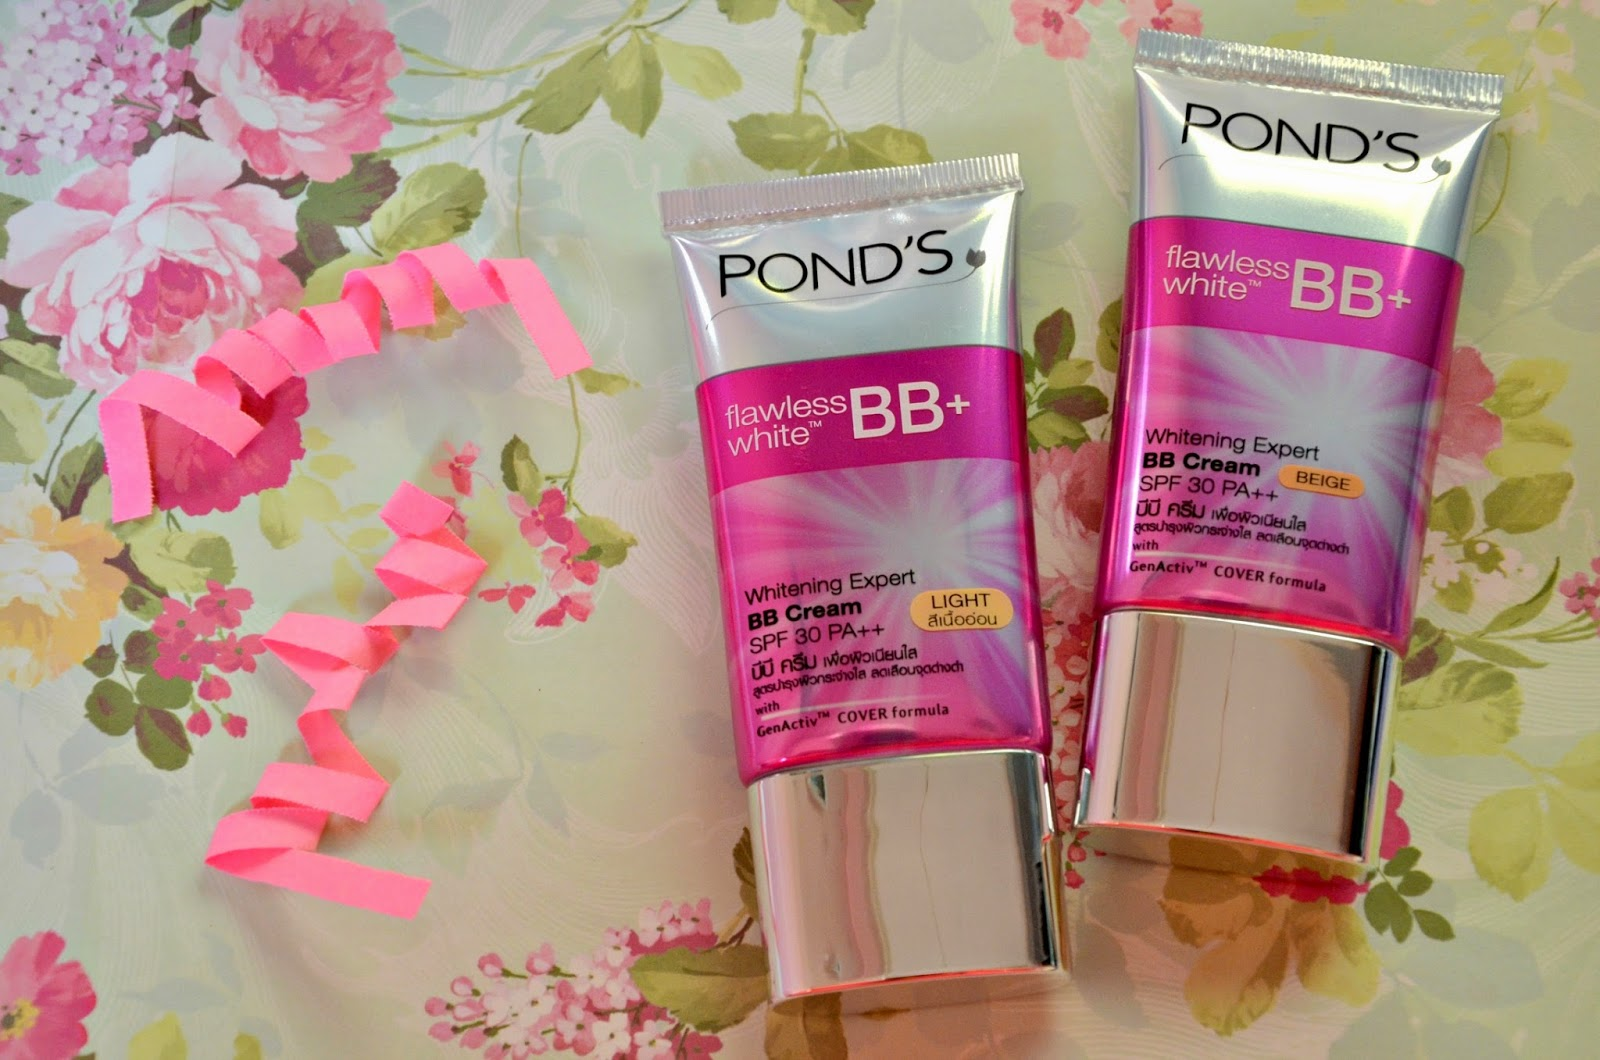 Unboxing The March 2015 Ponds Exclusive Bdj Box A Day In Life Flawless Daily Moist 50g White Bb Cream 25g Php340 Get Instantly Spotless And Radiant Skin With Whitening Expert Spf 30 Pa